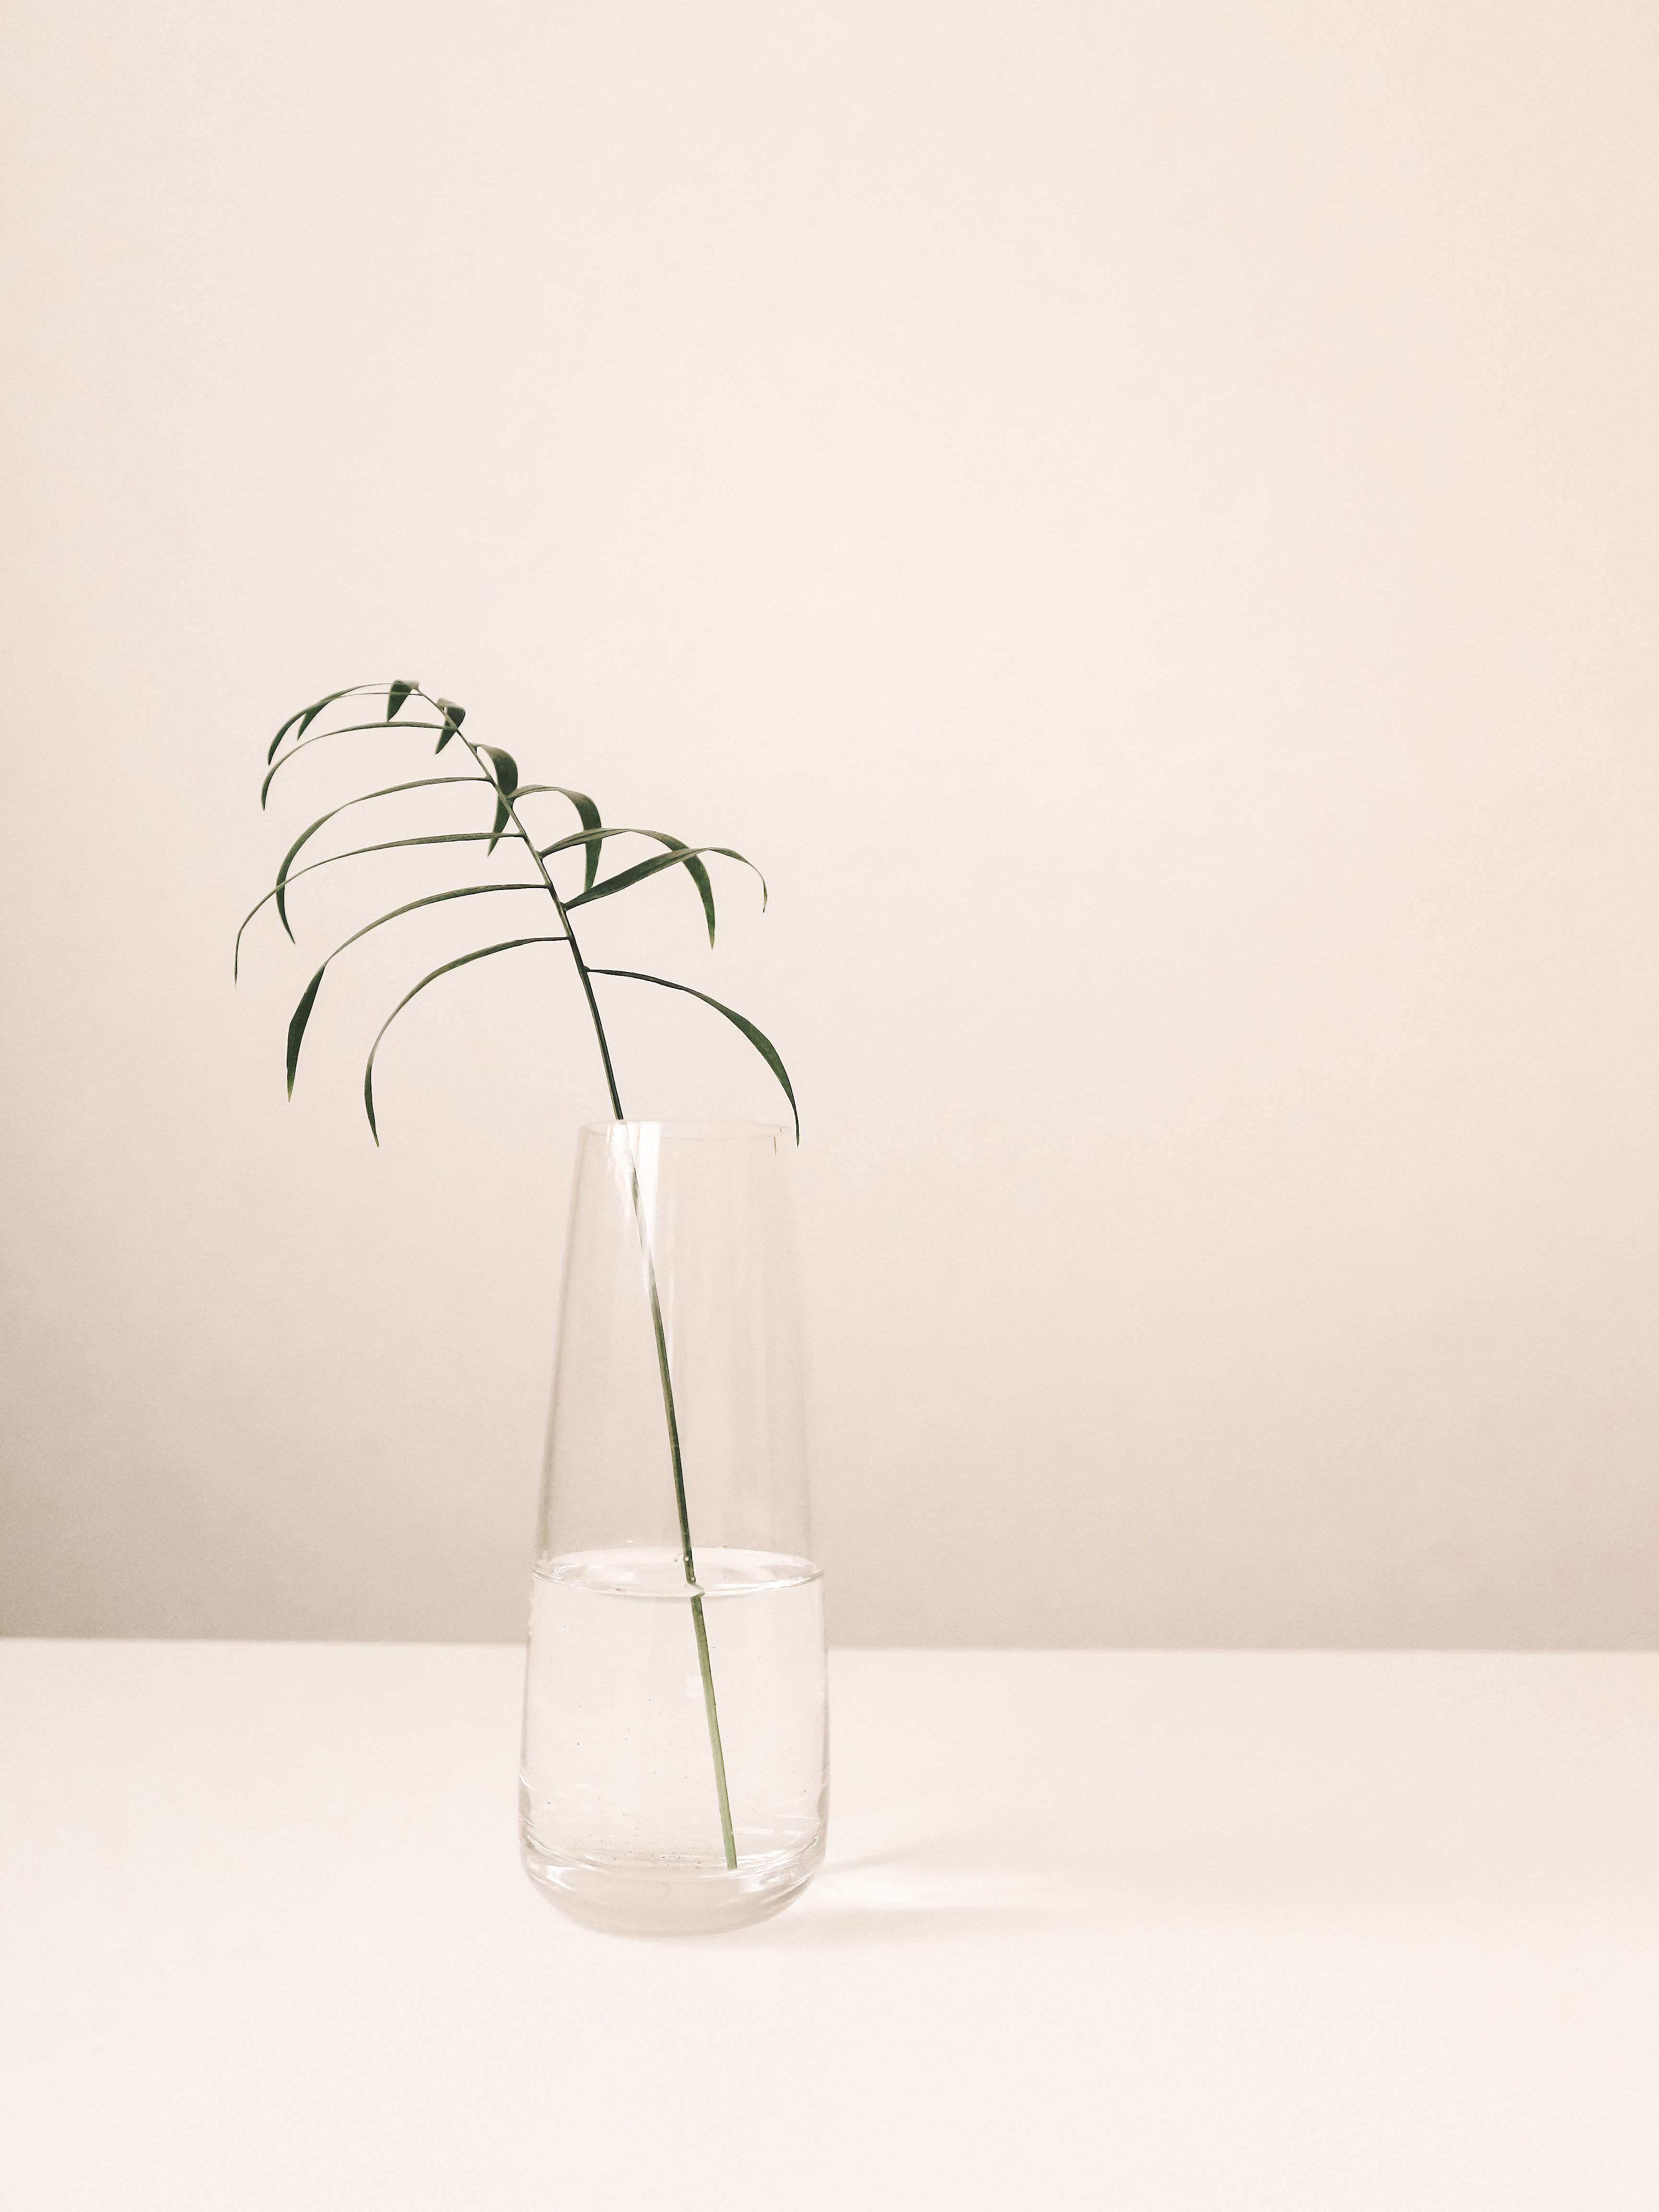 Clear vase with a leaf on a white table.